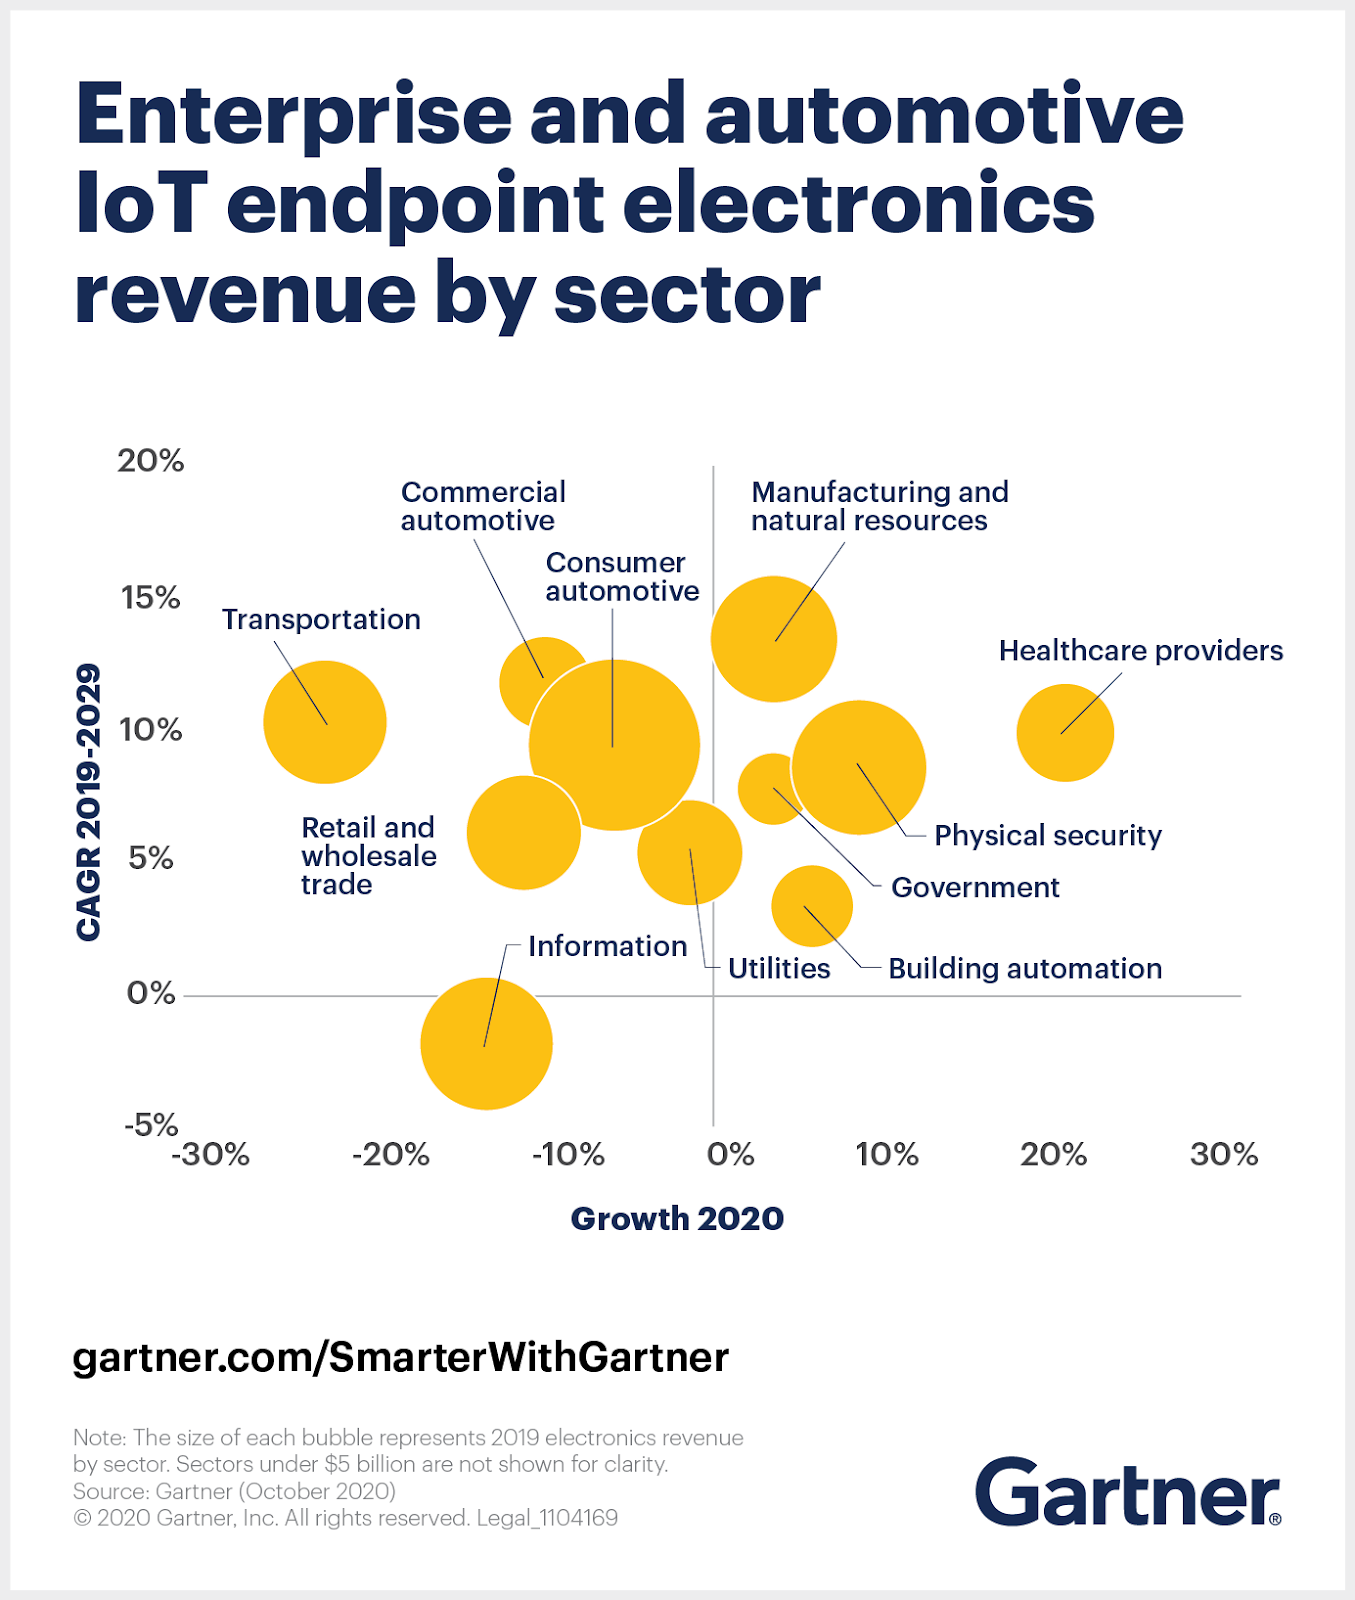 Enterprise and automotive IoT endpoint electronics revenue by sector which shows that healthcare providers' IoT endpoint revenue will grow 20% in 2020.